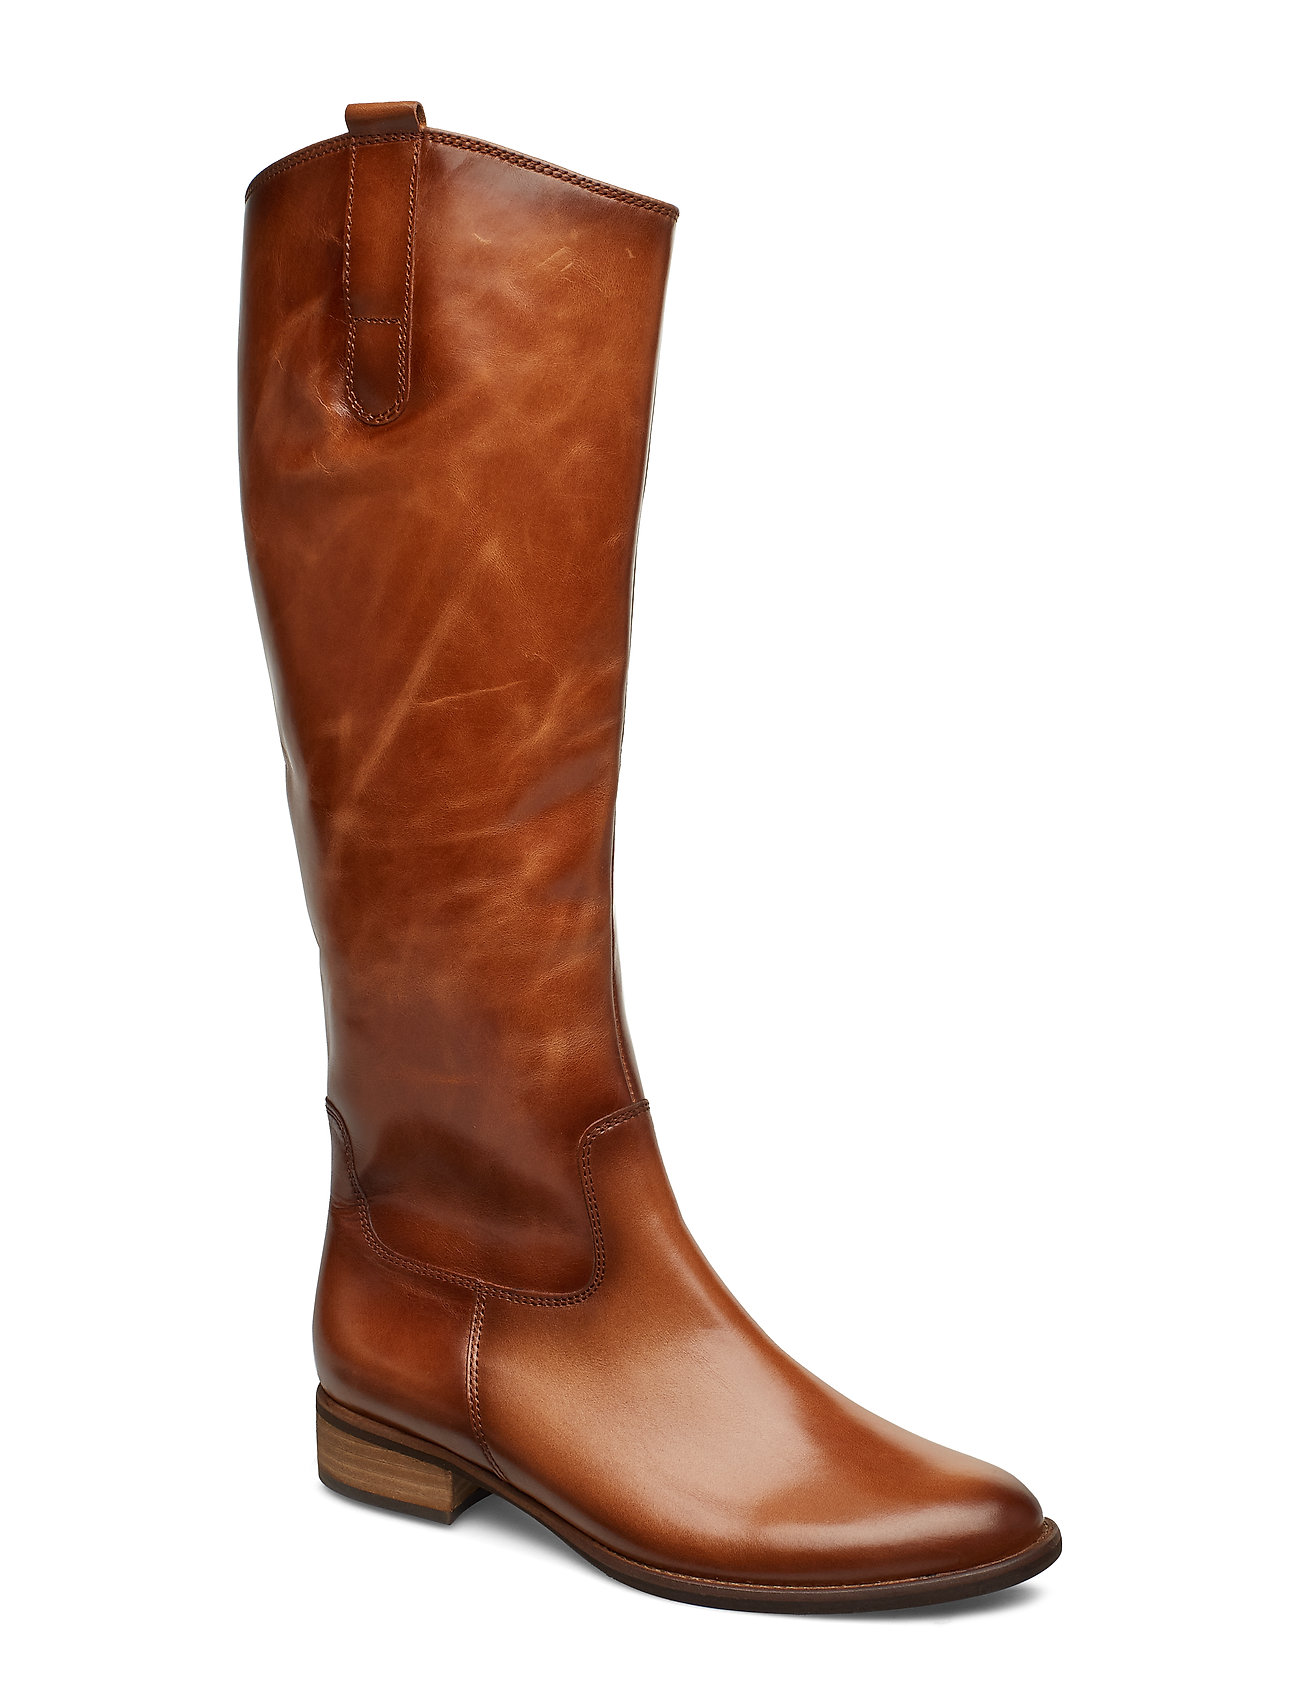 Gabor Boots - BROWN